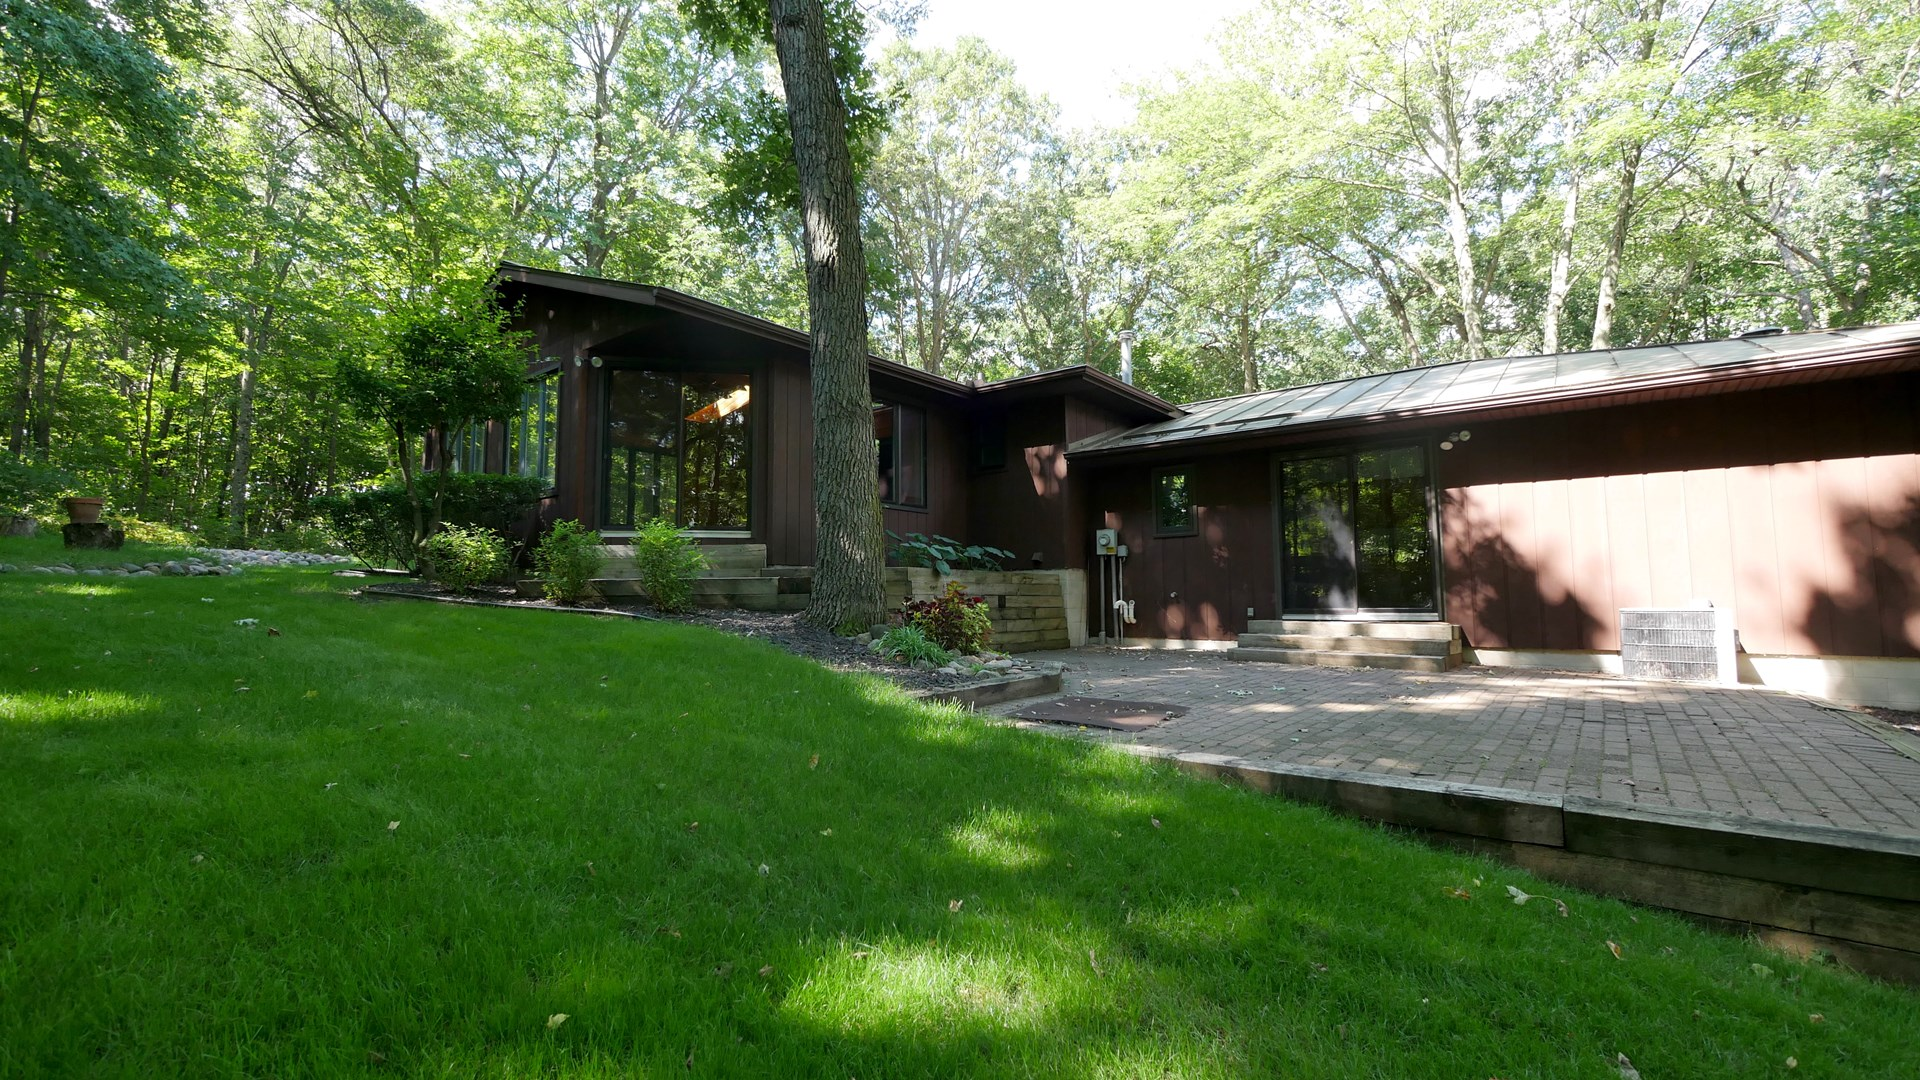 Home for Sale in Portage County Amherst Jct WI